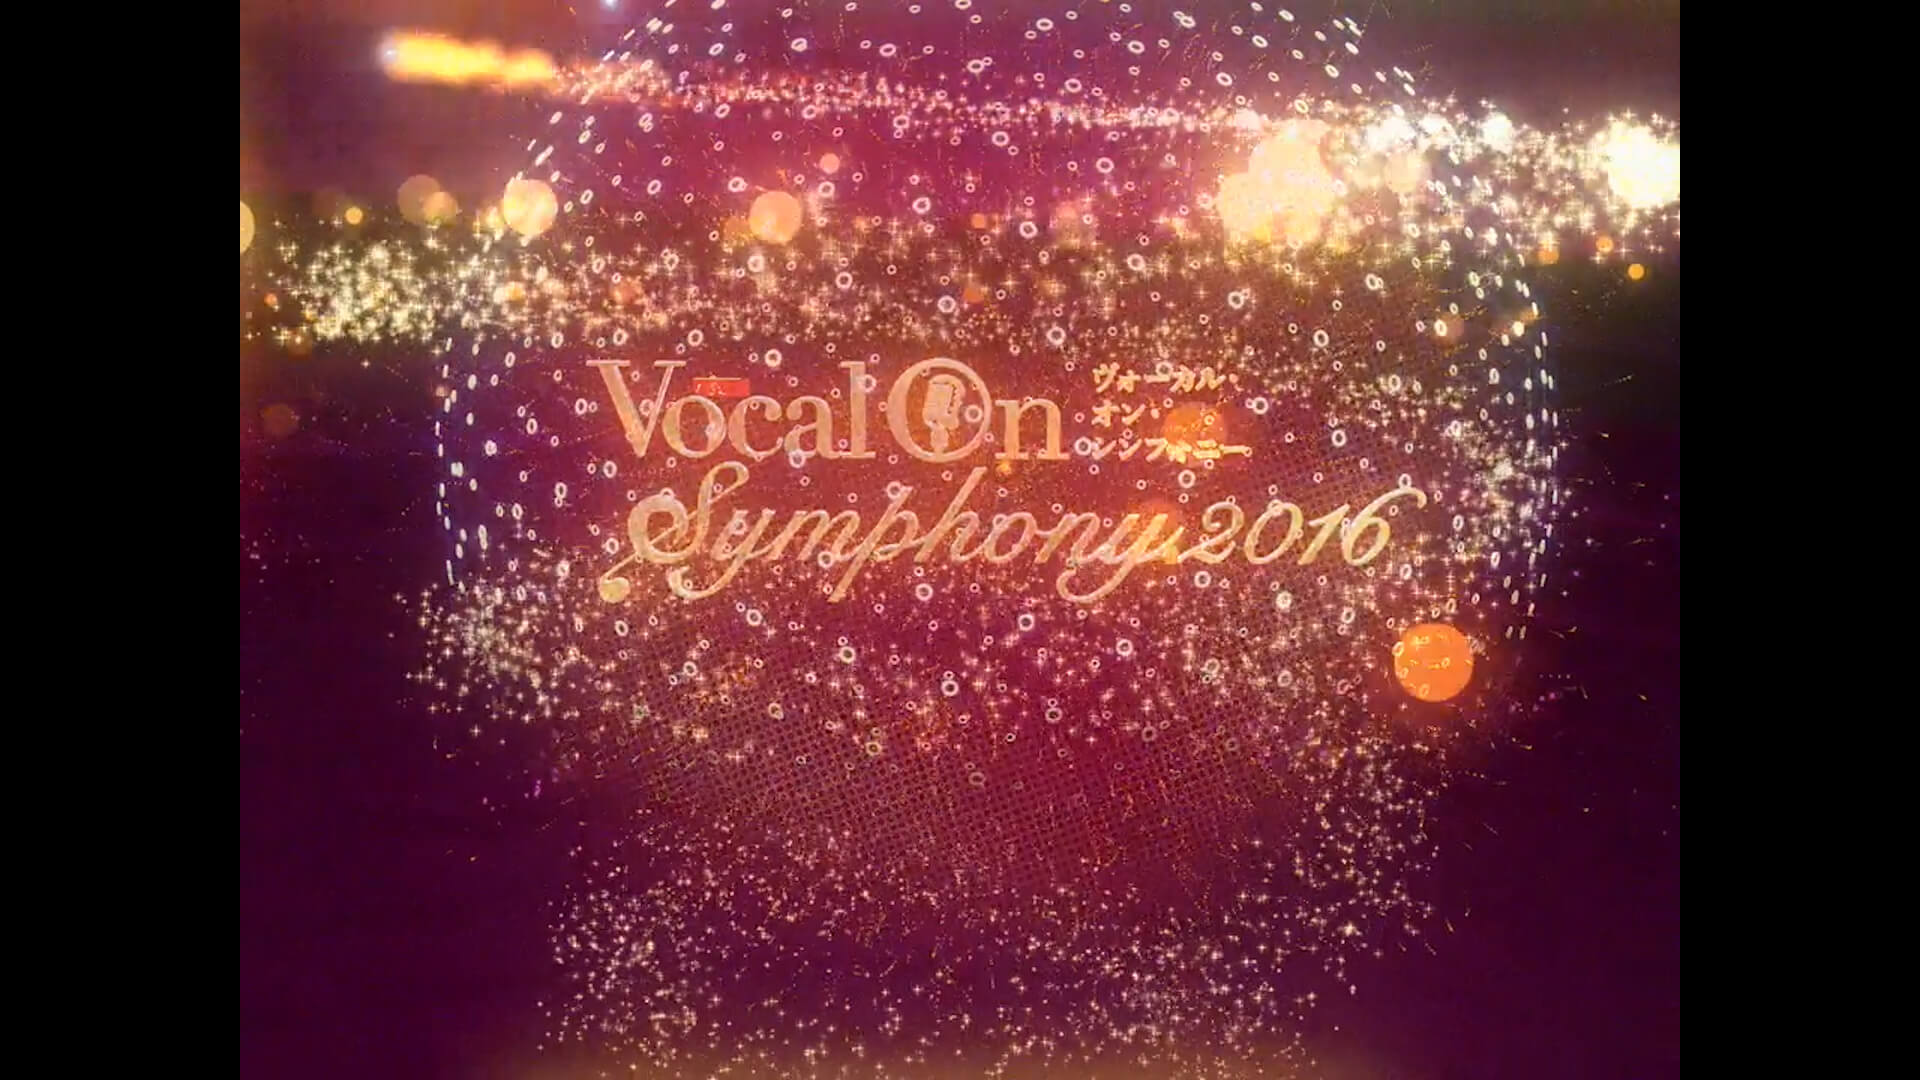 Vocal On Symphony 2016